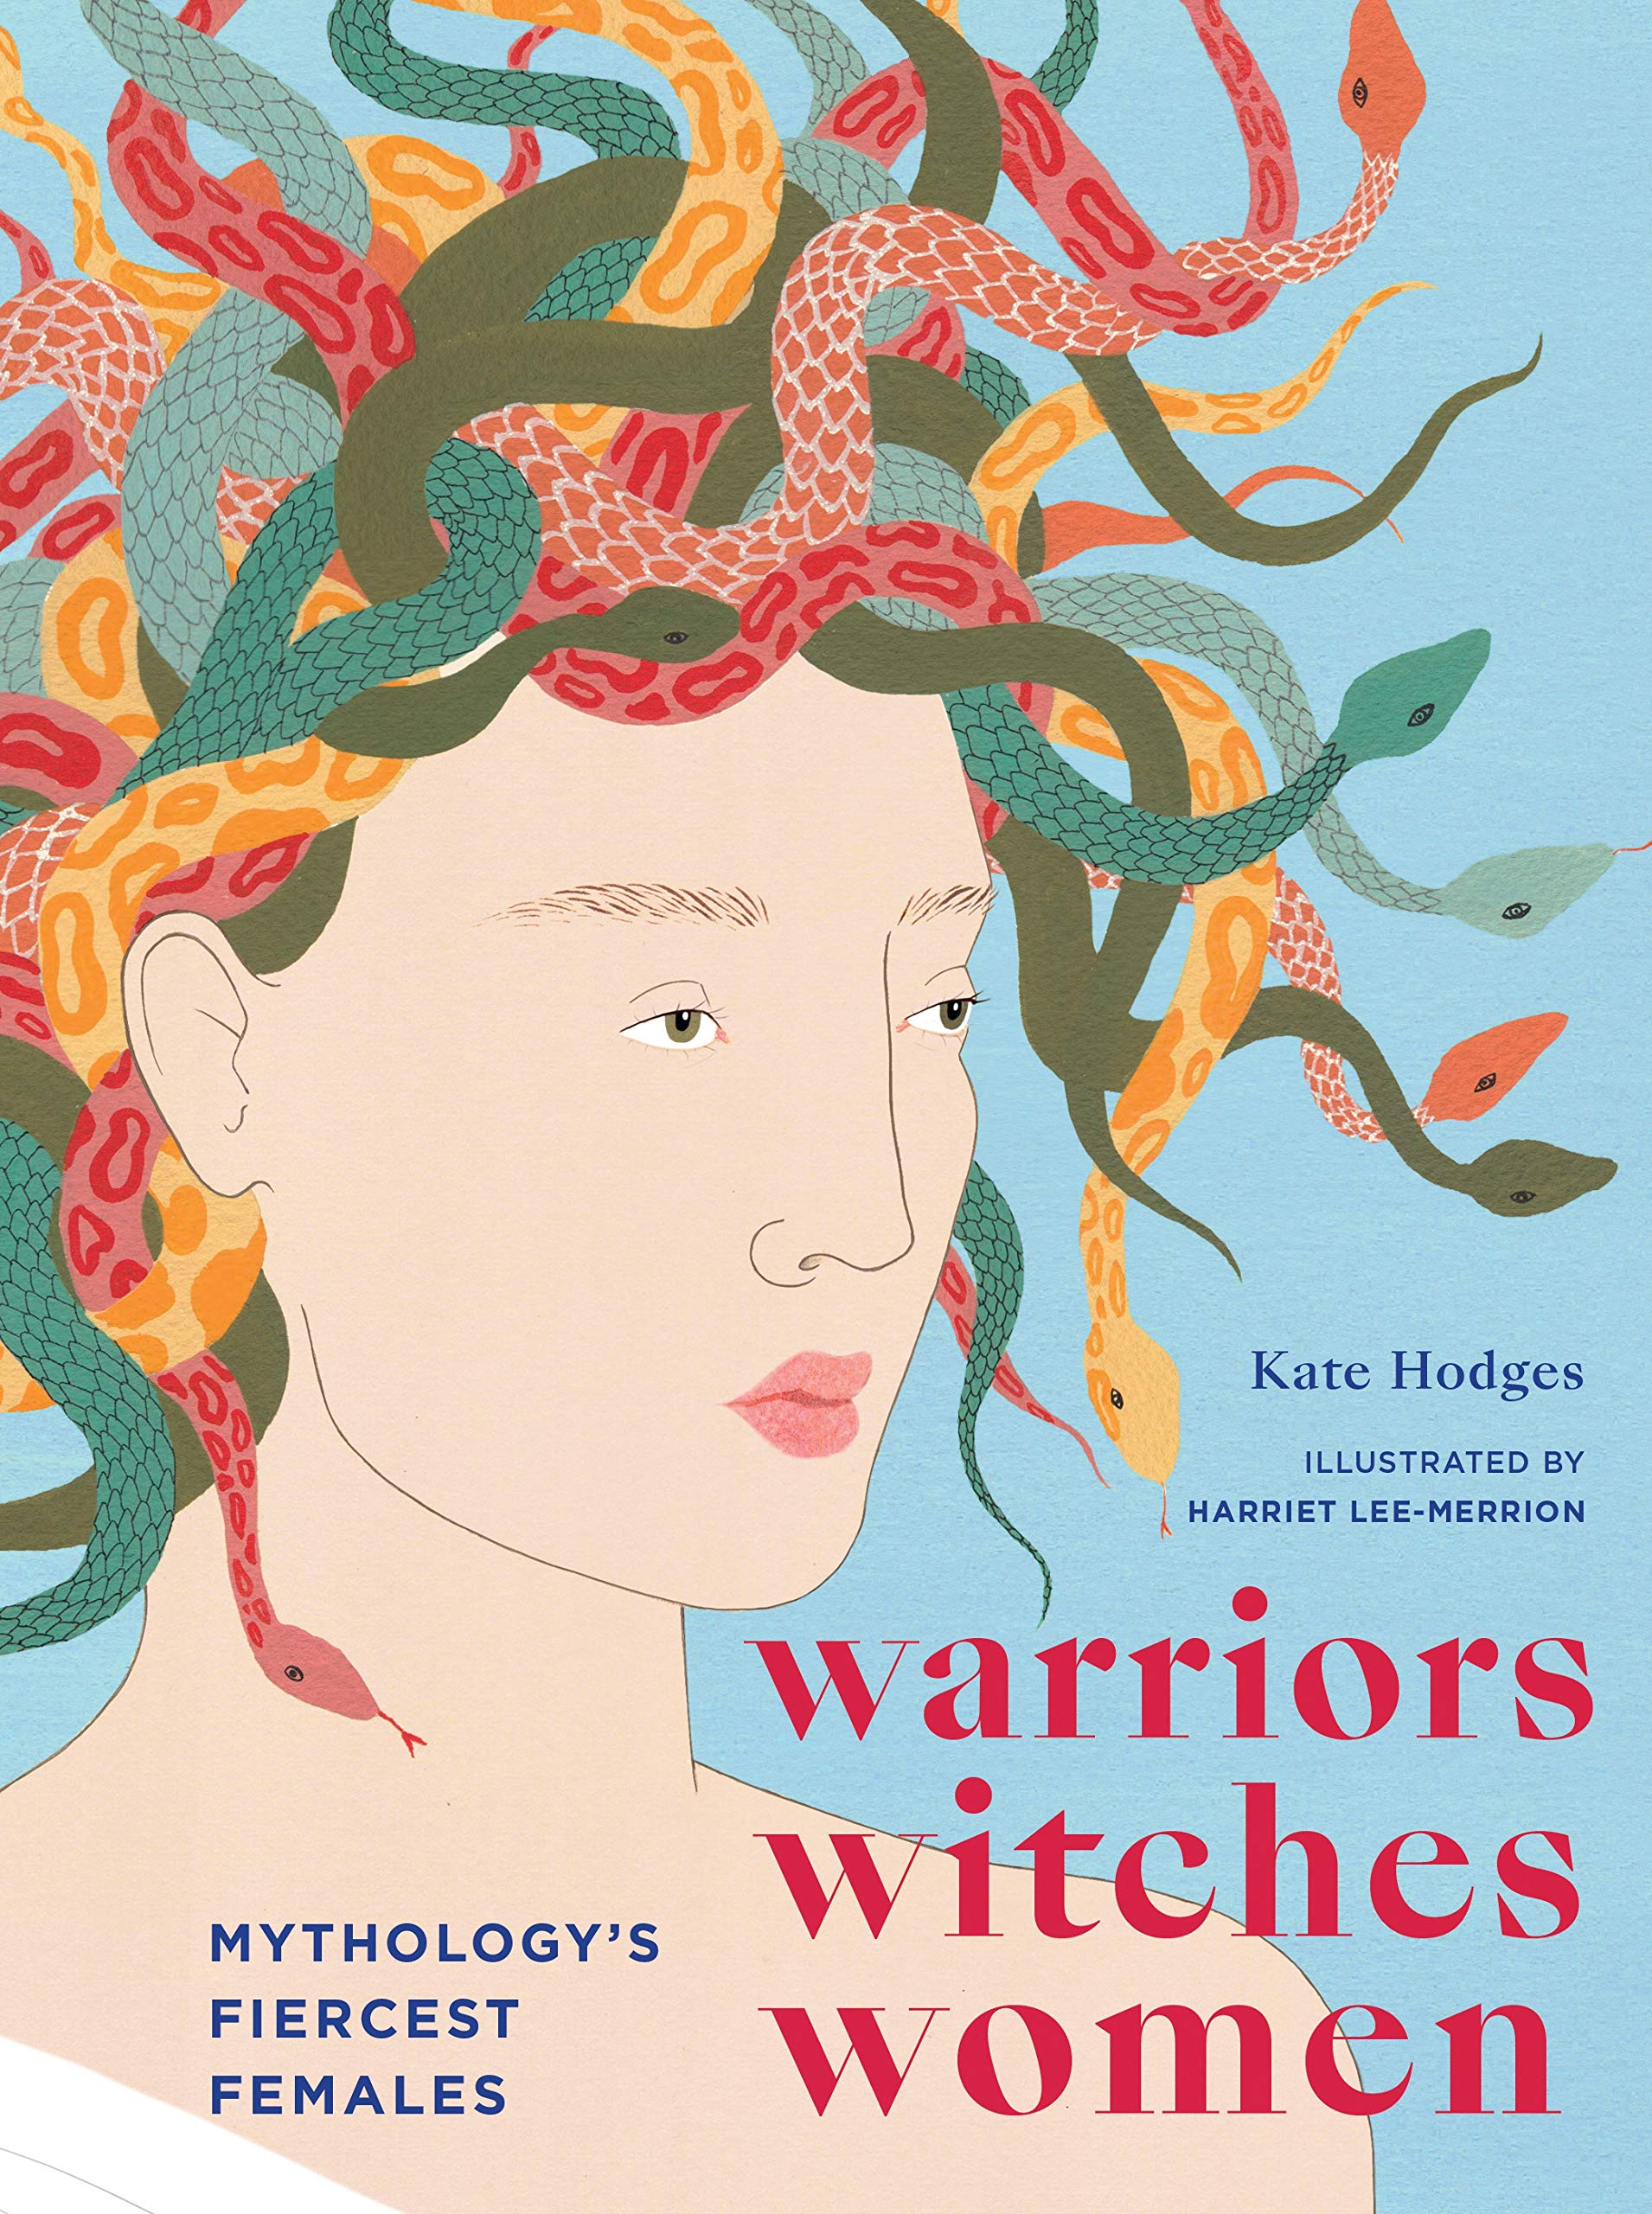 Book Cover: Warriors, Witches, Women: Celebrating Mythology's Fiercest Females